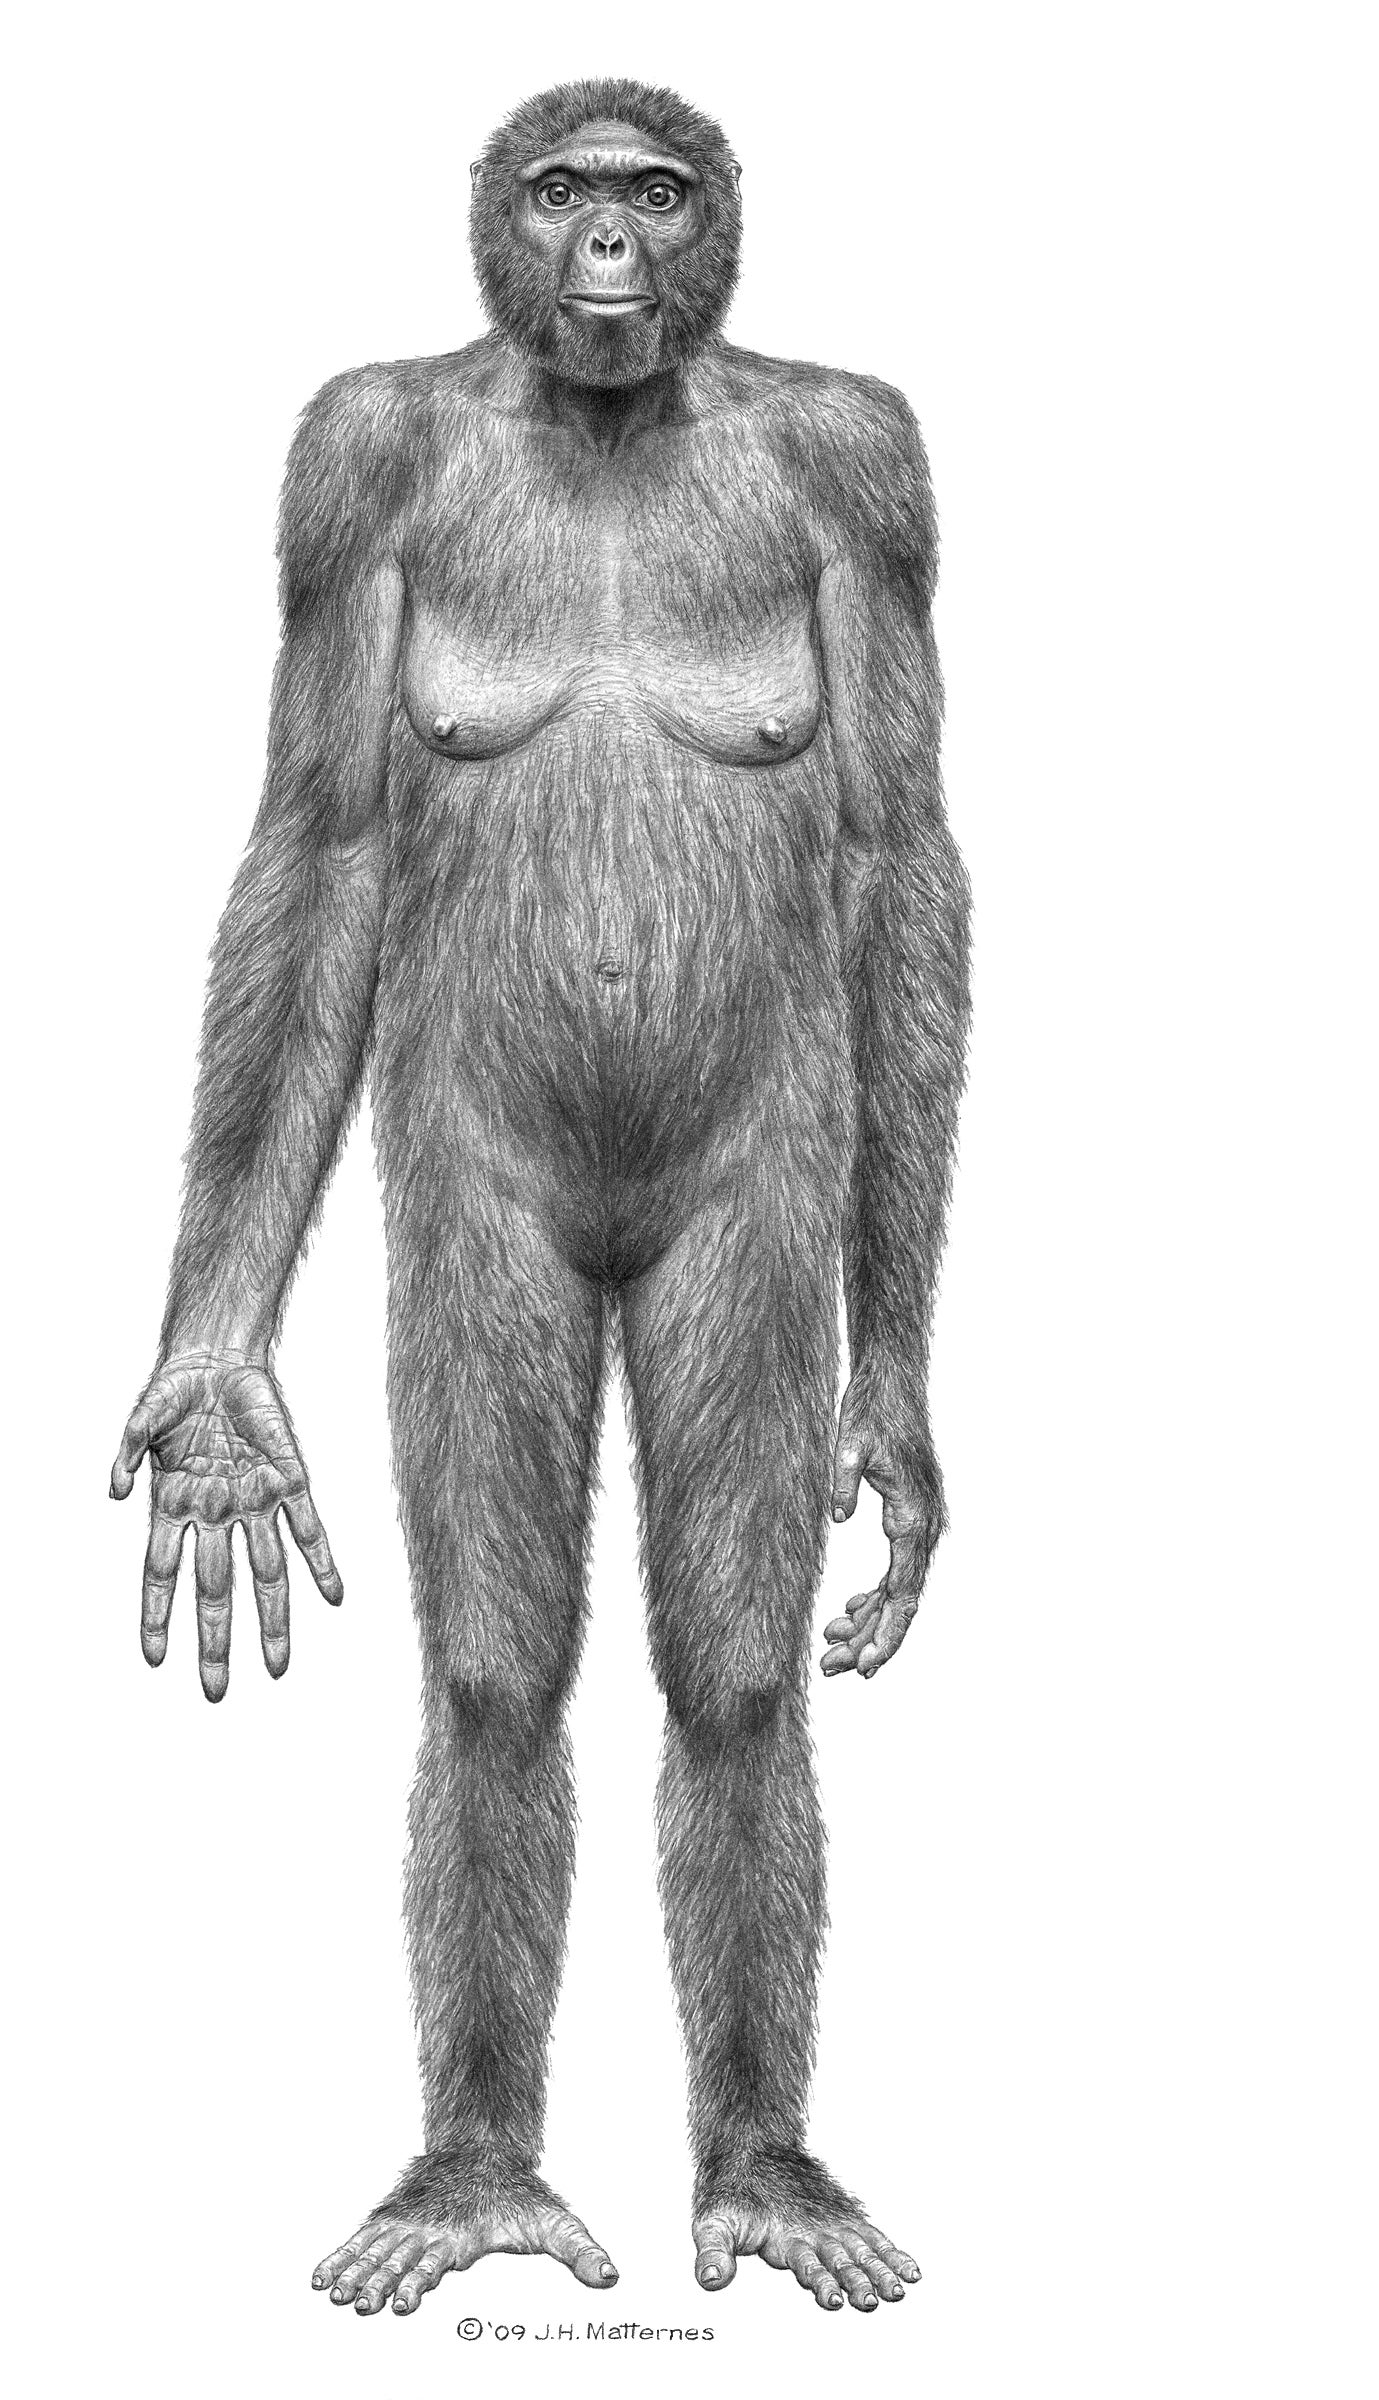 Hello, Ardi: New Oldest Humanoid Fossil A Million Years Older Than Lucy